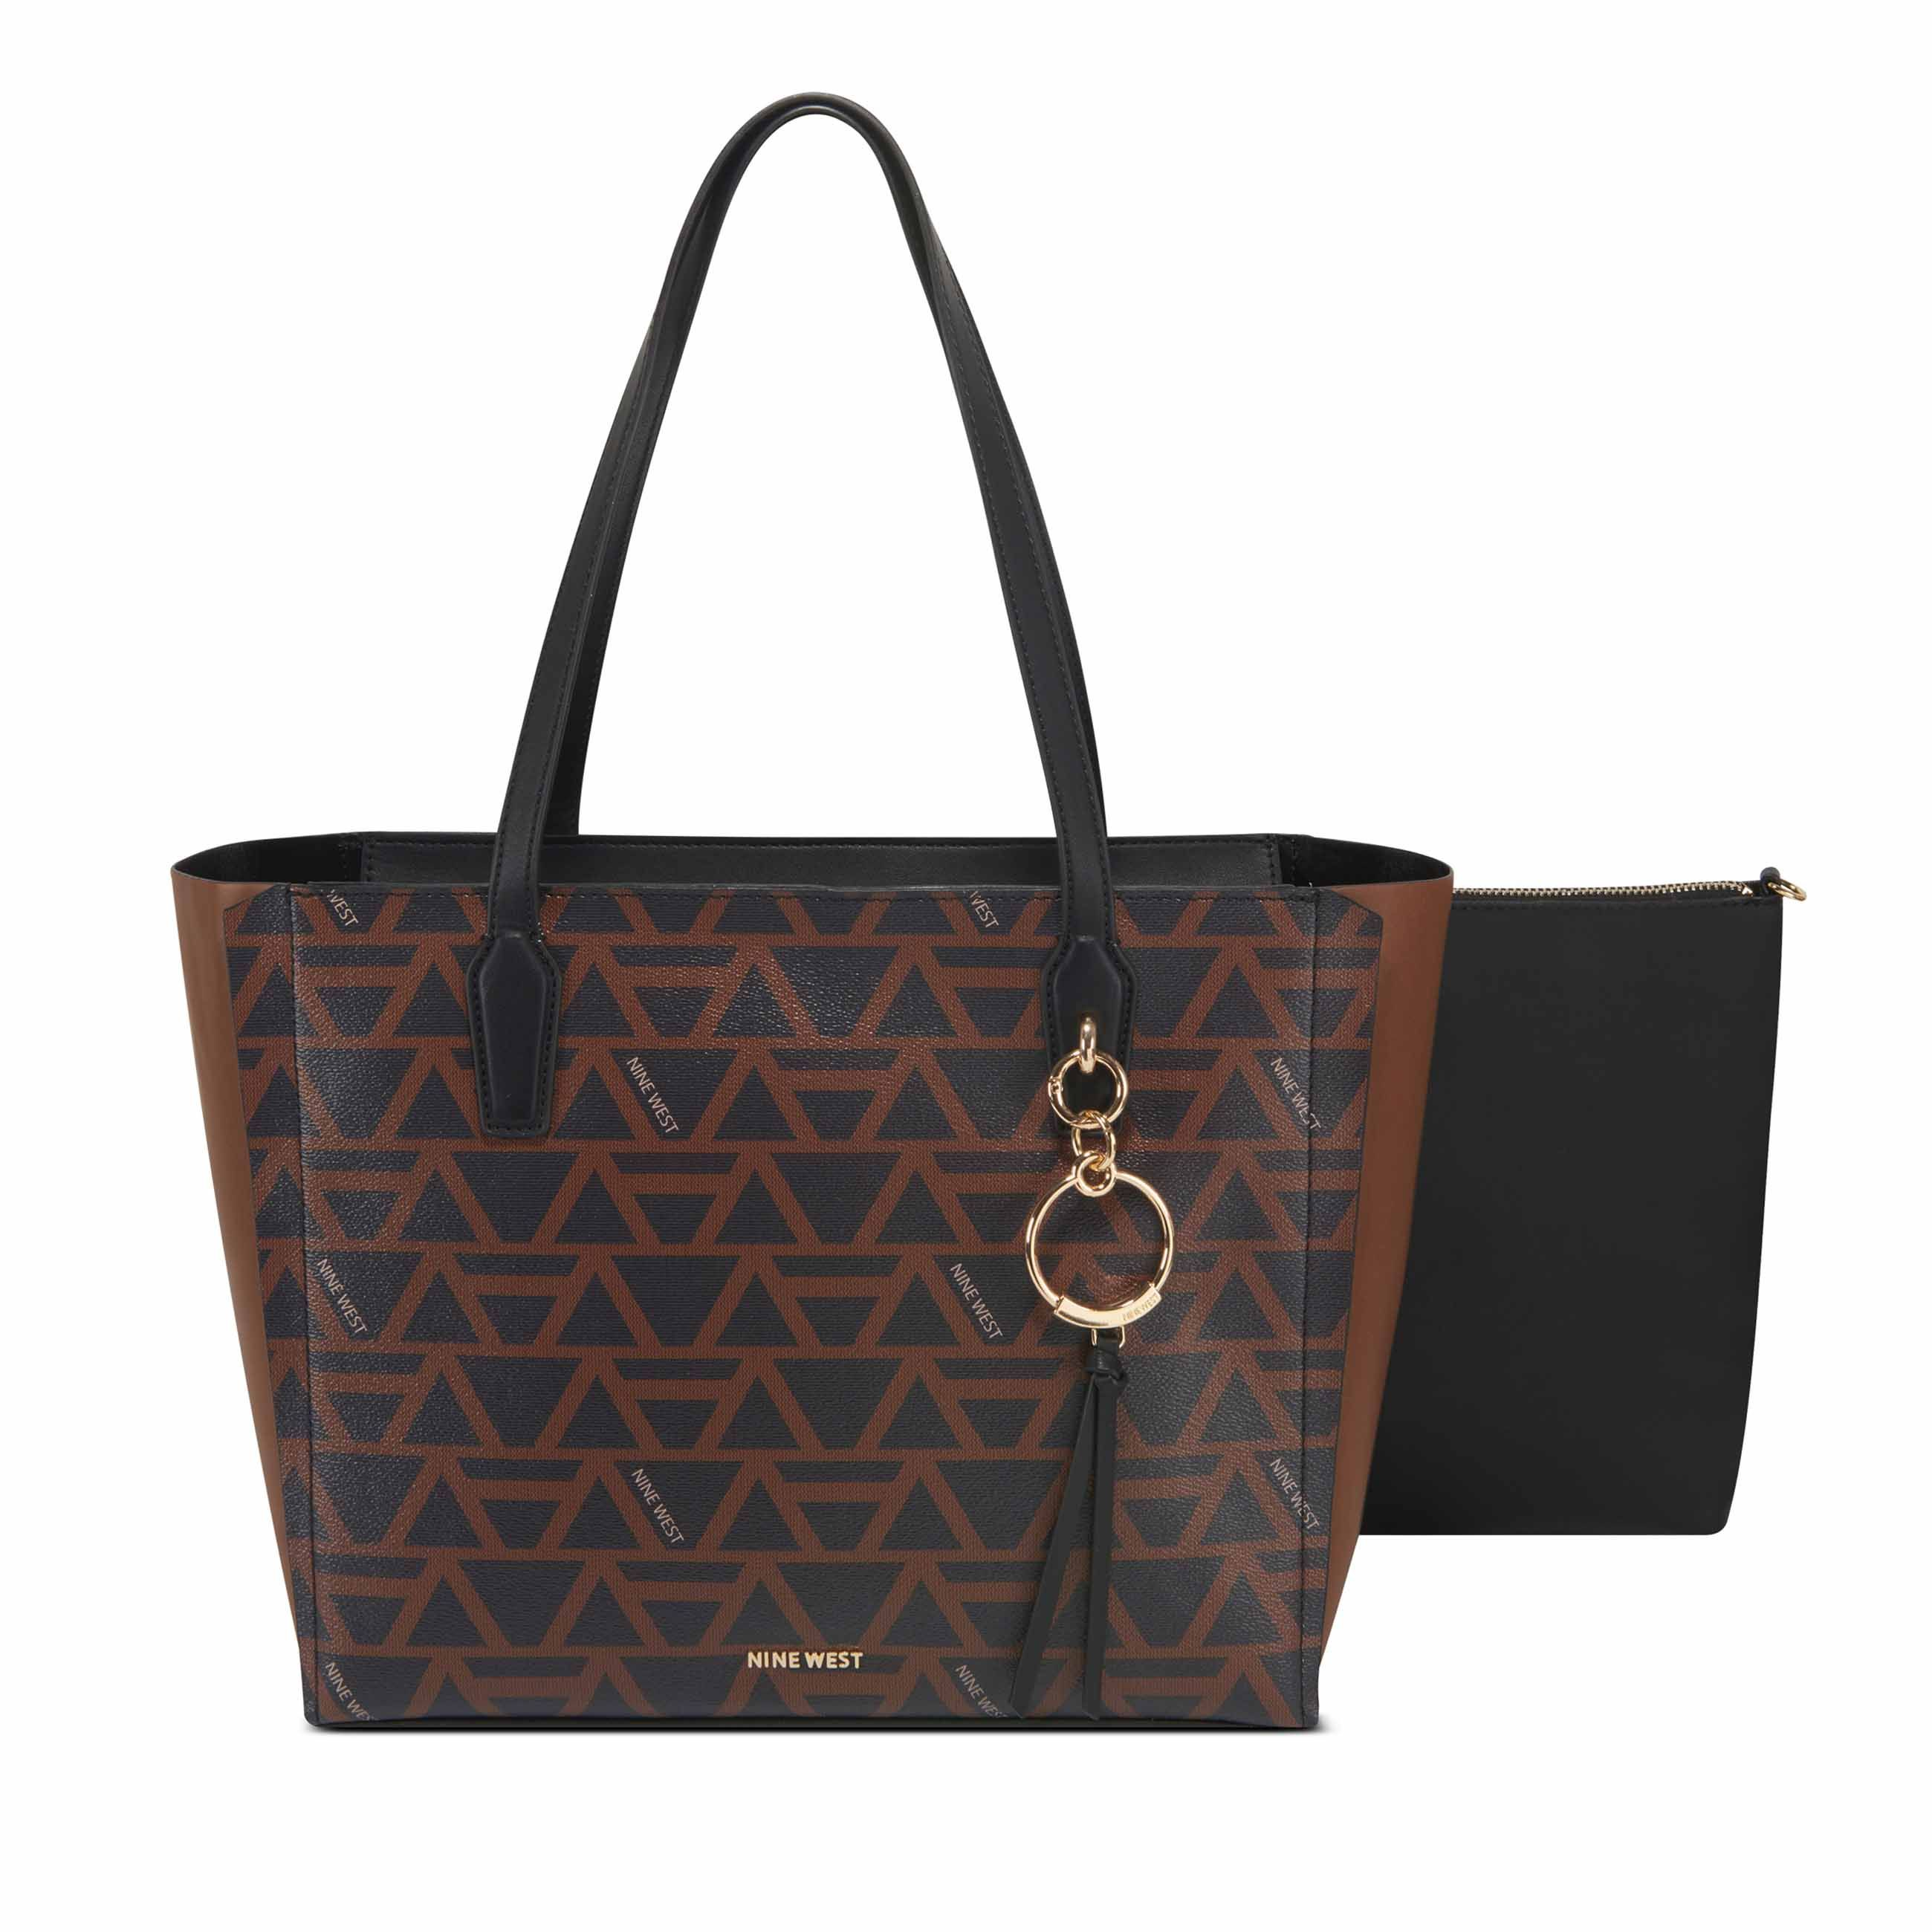 Ring Leader Tote.